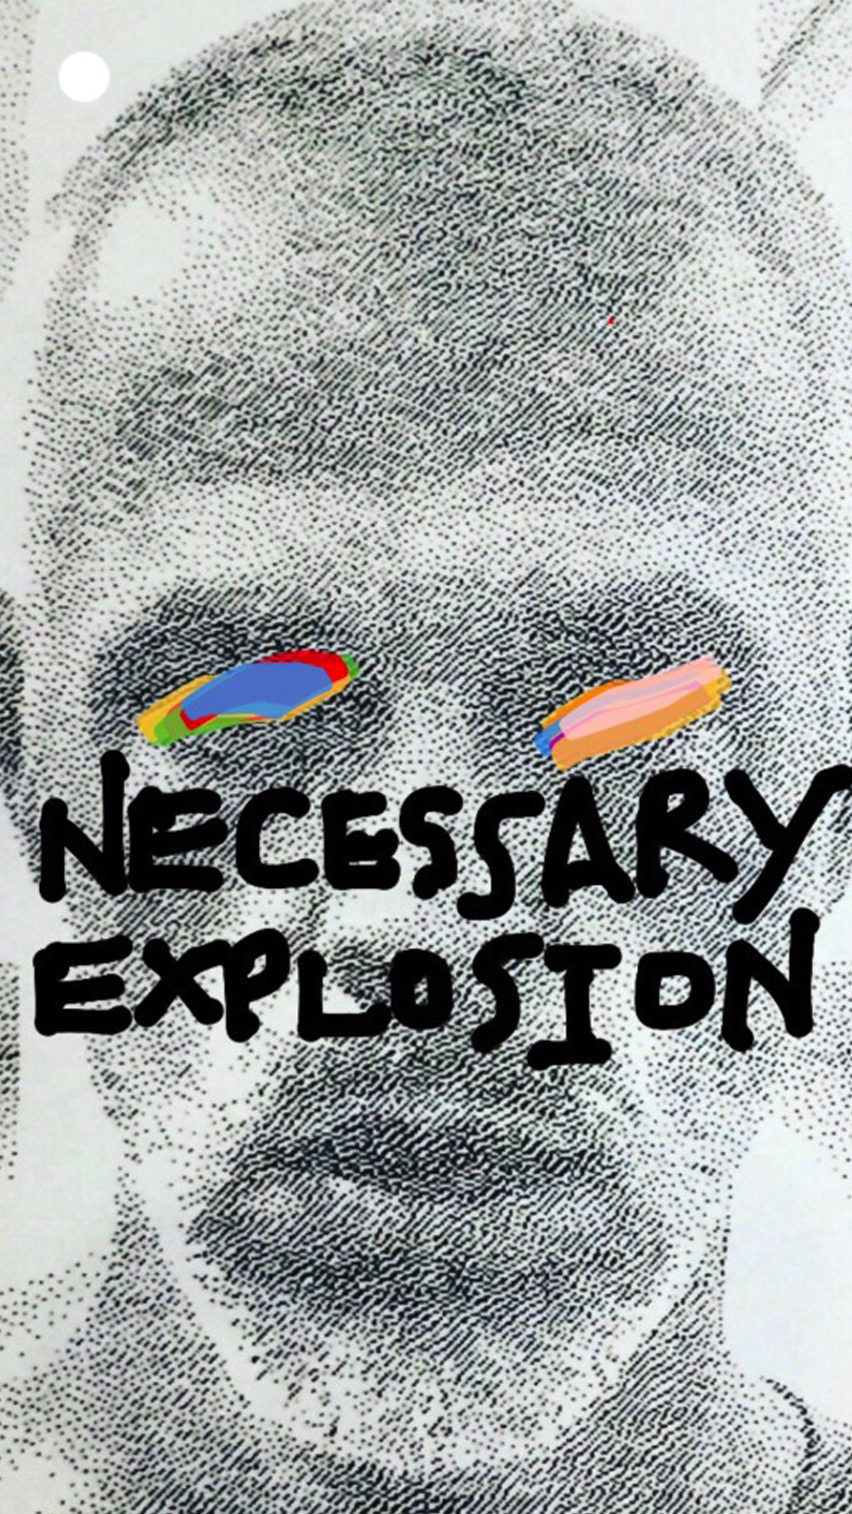 Personal Project: New album courtesy of Amsterdam's psychedelic rocker Necessary Explosion